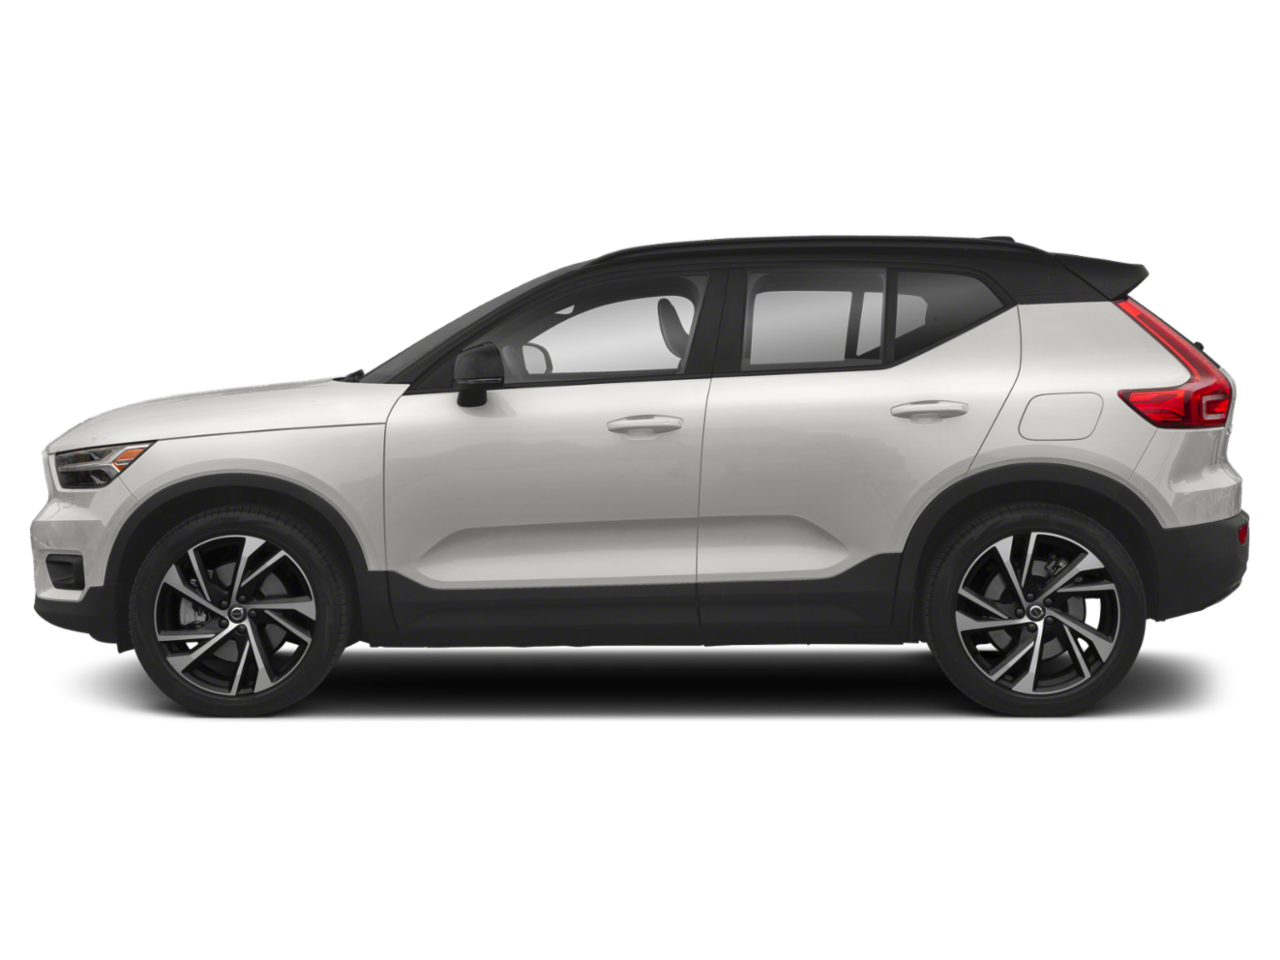 2021 Volvo XC40 Recharge P8 eAWD Pure Electric